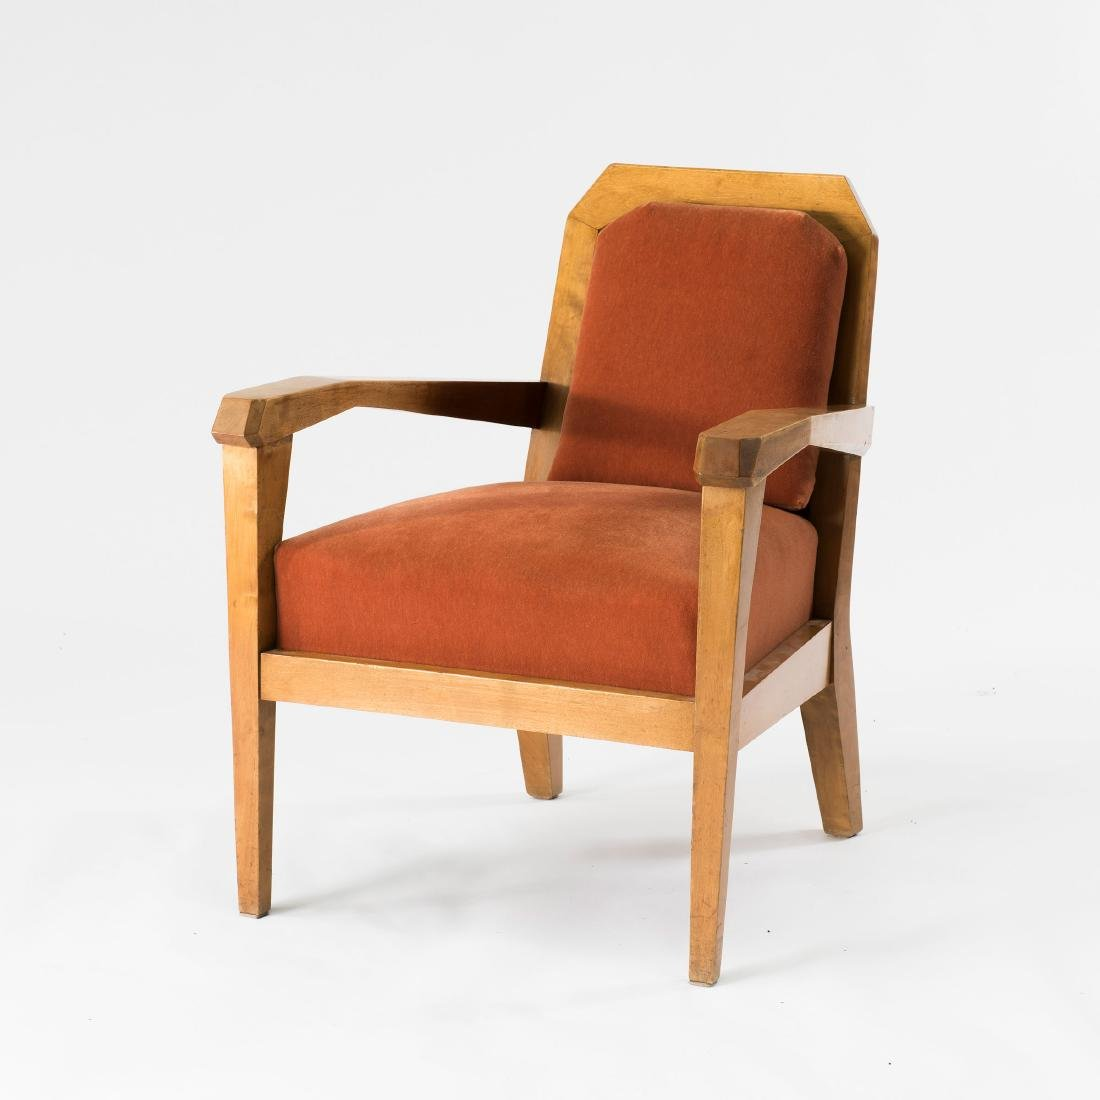 Anthroposophic armchair, 1930s - 5